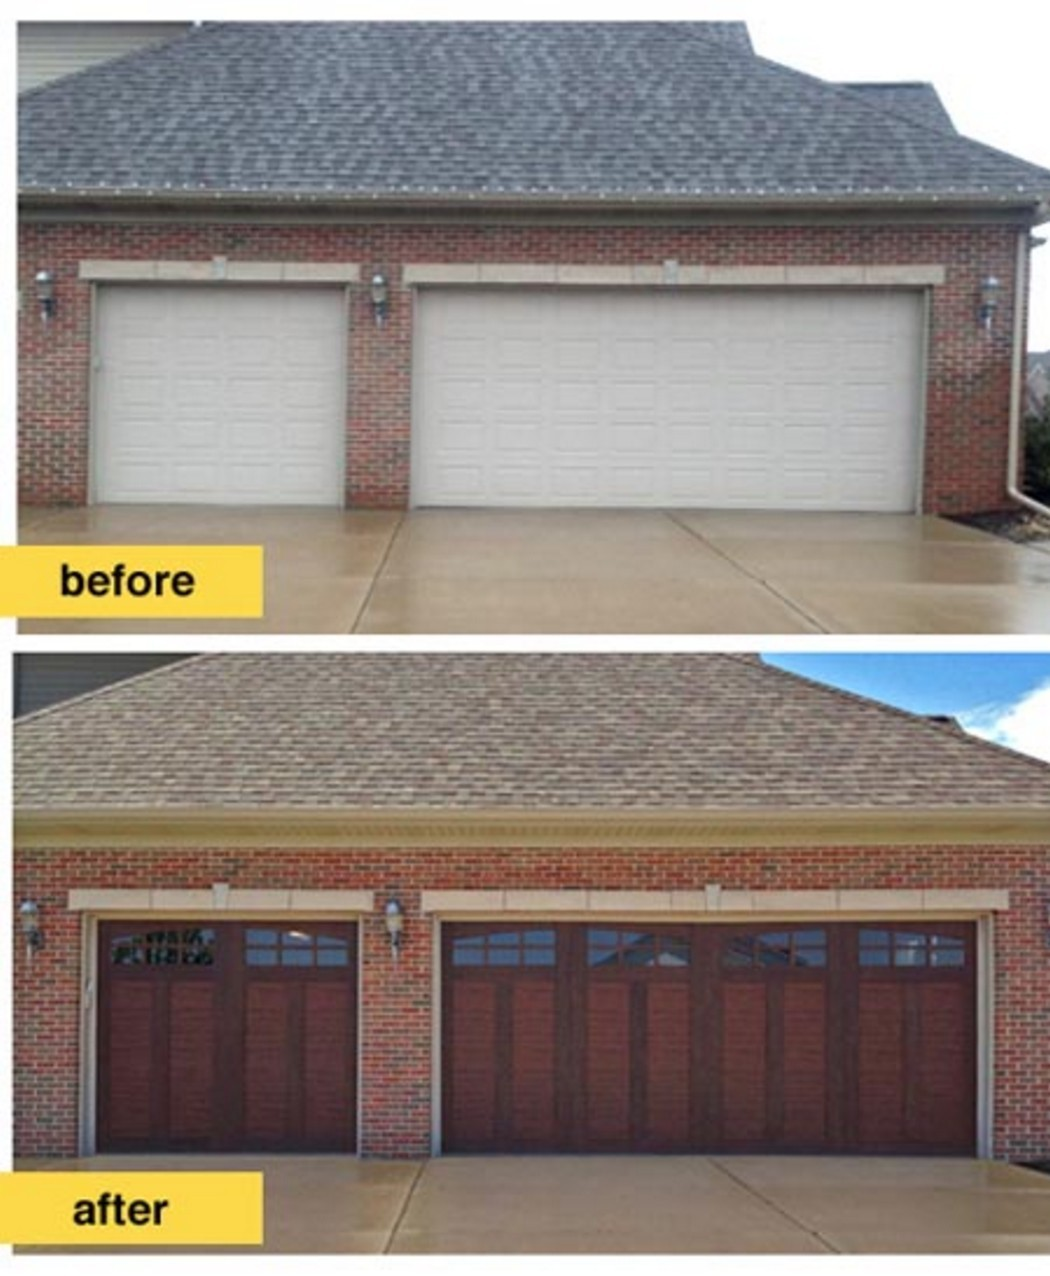 Garage Door Makeover Ideas Garrdenoflove